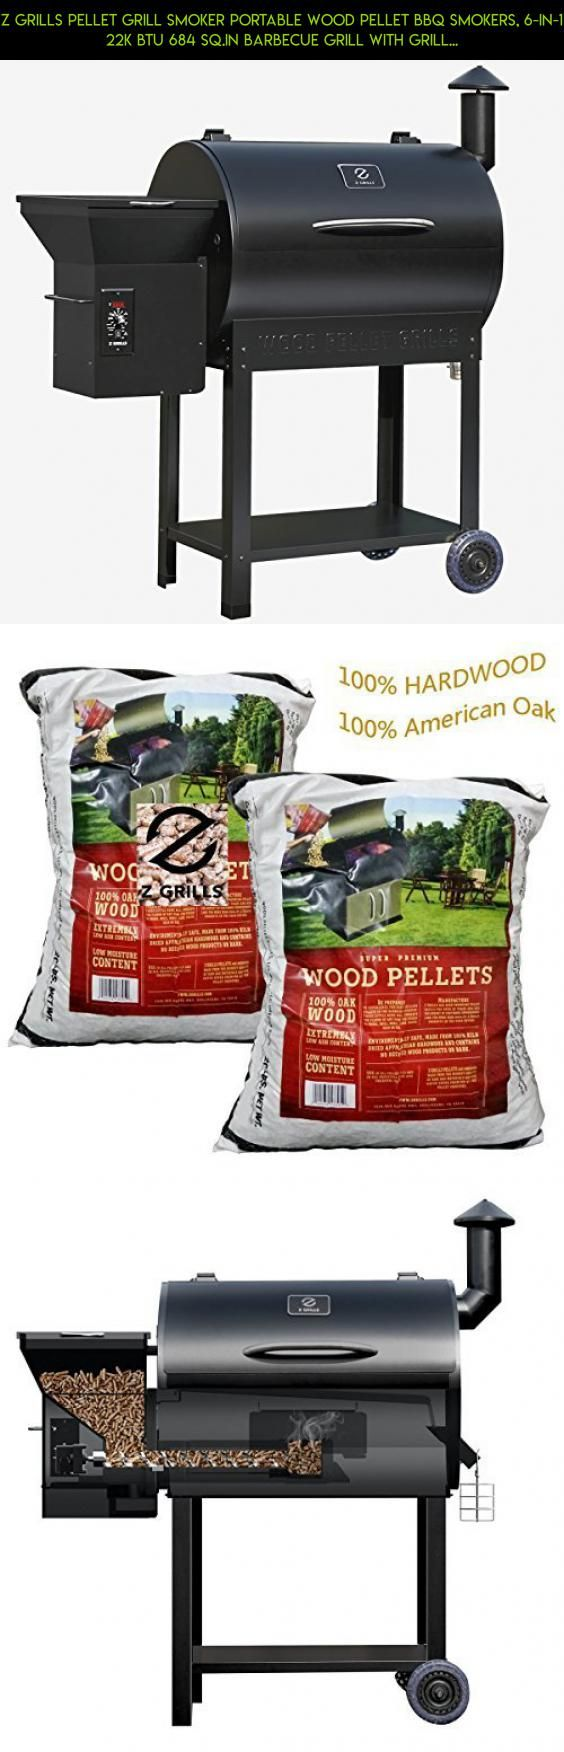 Z grills Pellet Grill Smoker Portable Wood Pellet BBQ Smokers, 6-in-1 22K BTU 684 Sq.in Barbecue Grill with Grill ,Smoke,Brake,Roast,Braise and BBQ-Free 2 Pack Wood Pellets #gadgets #racing #parts #tech #fpv #z #plans #grills #grill #products #drone #camera #technology #pellet #kit #shopping